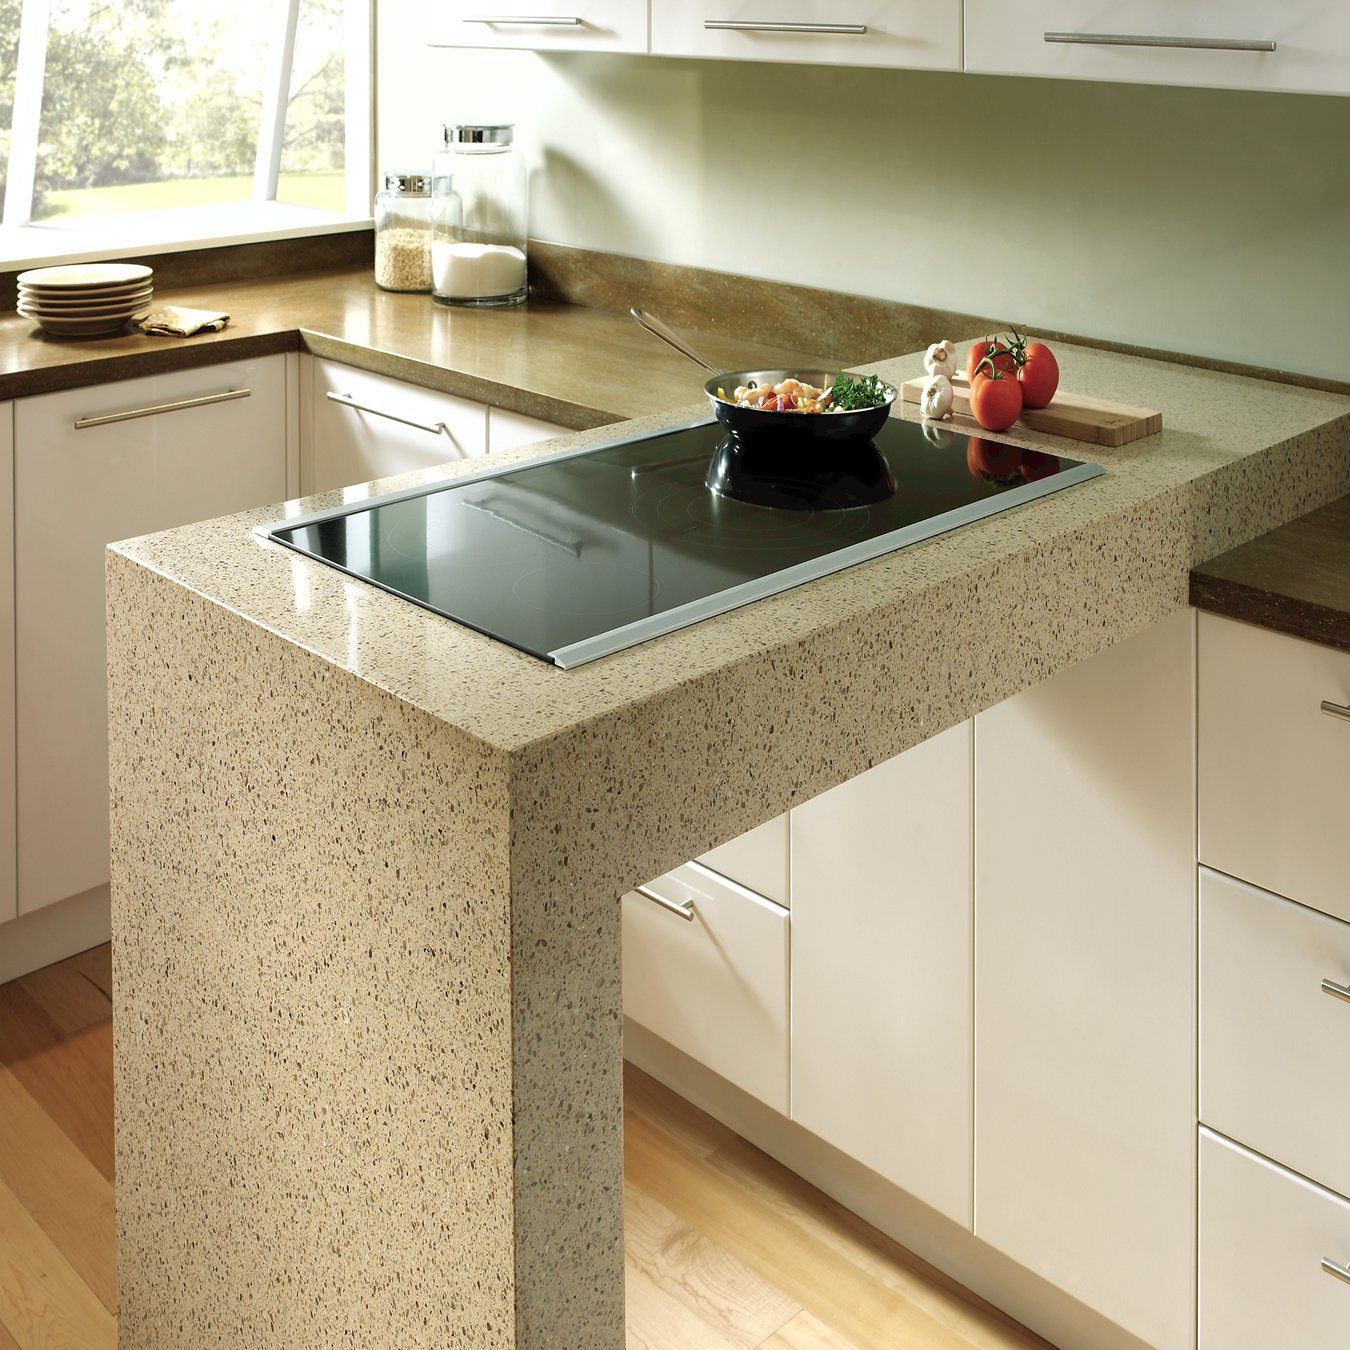 Marble grain material trimmed bar counter in small pastel colored kitchen